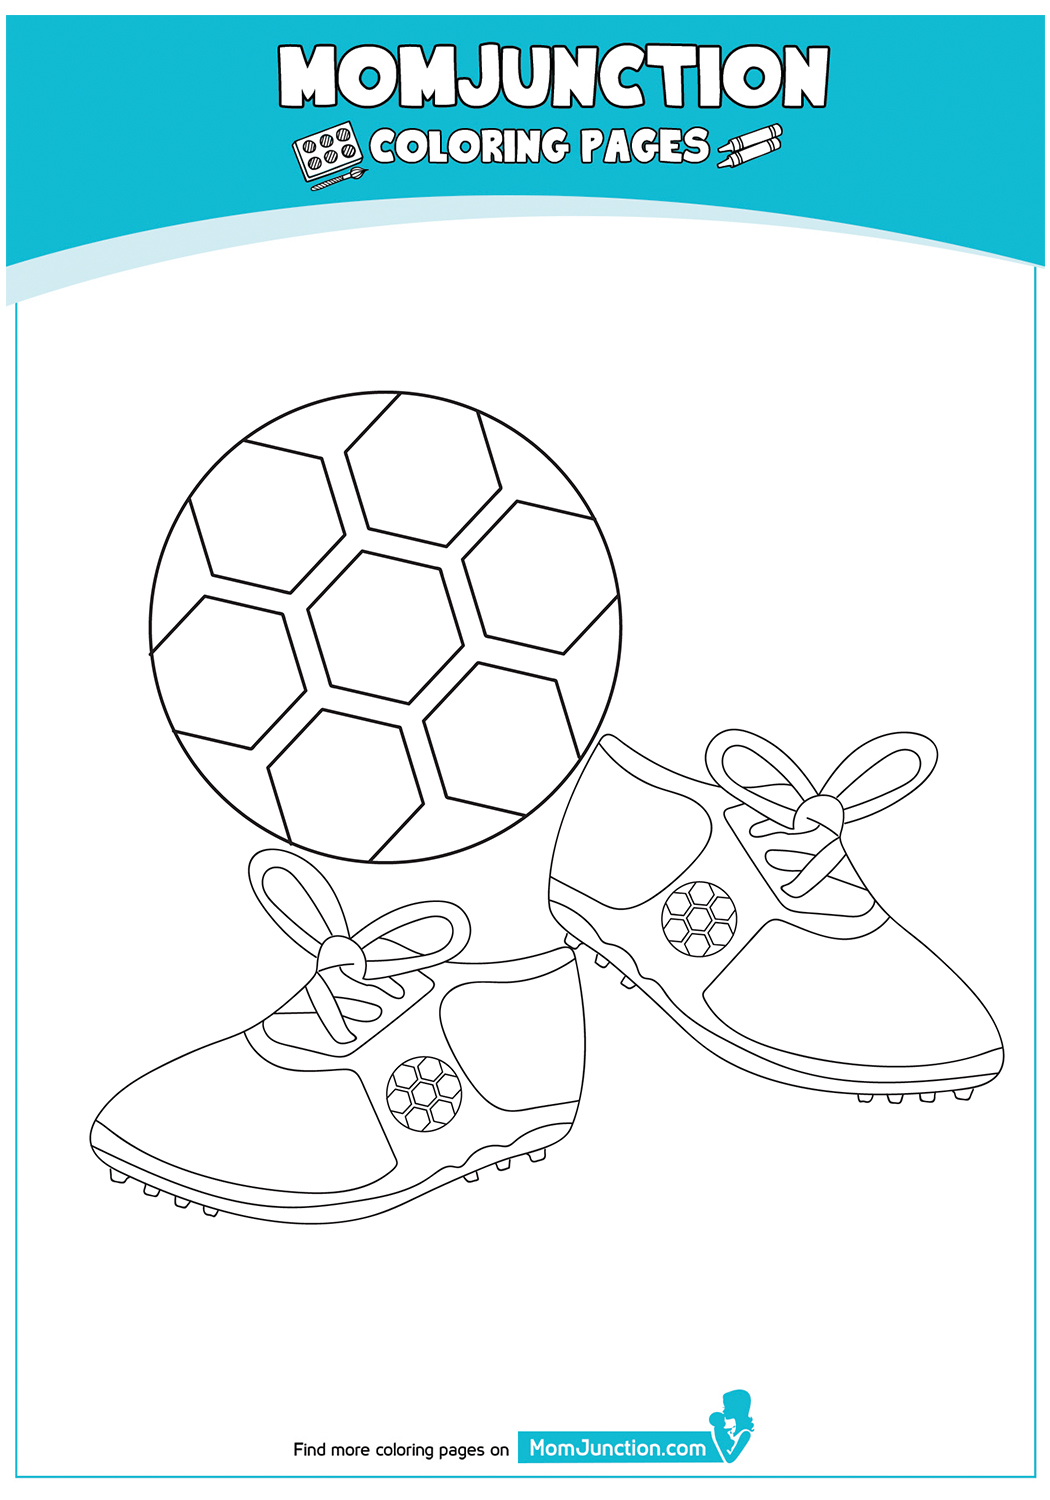 The-Soccer-Shoes-17